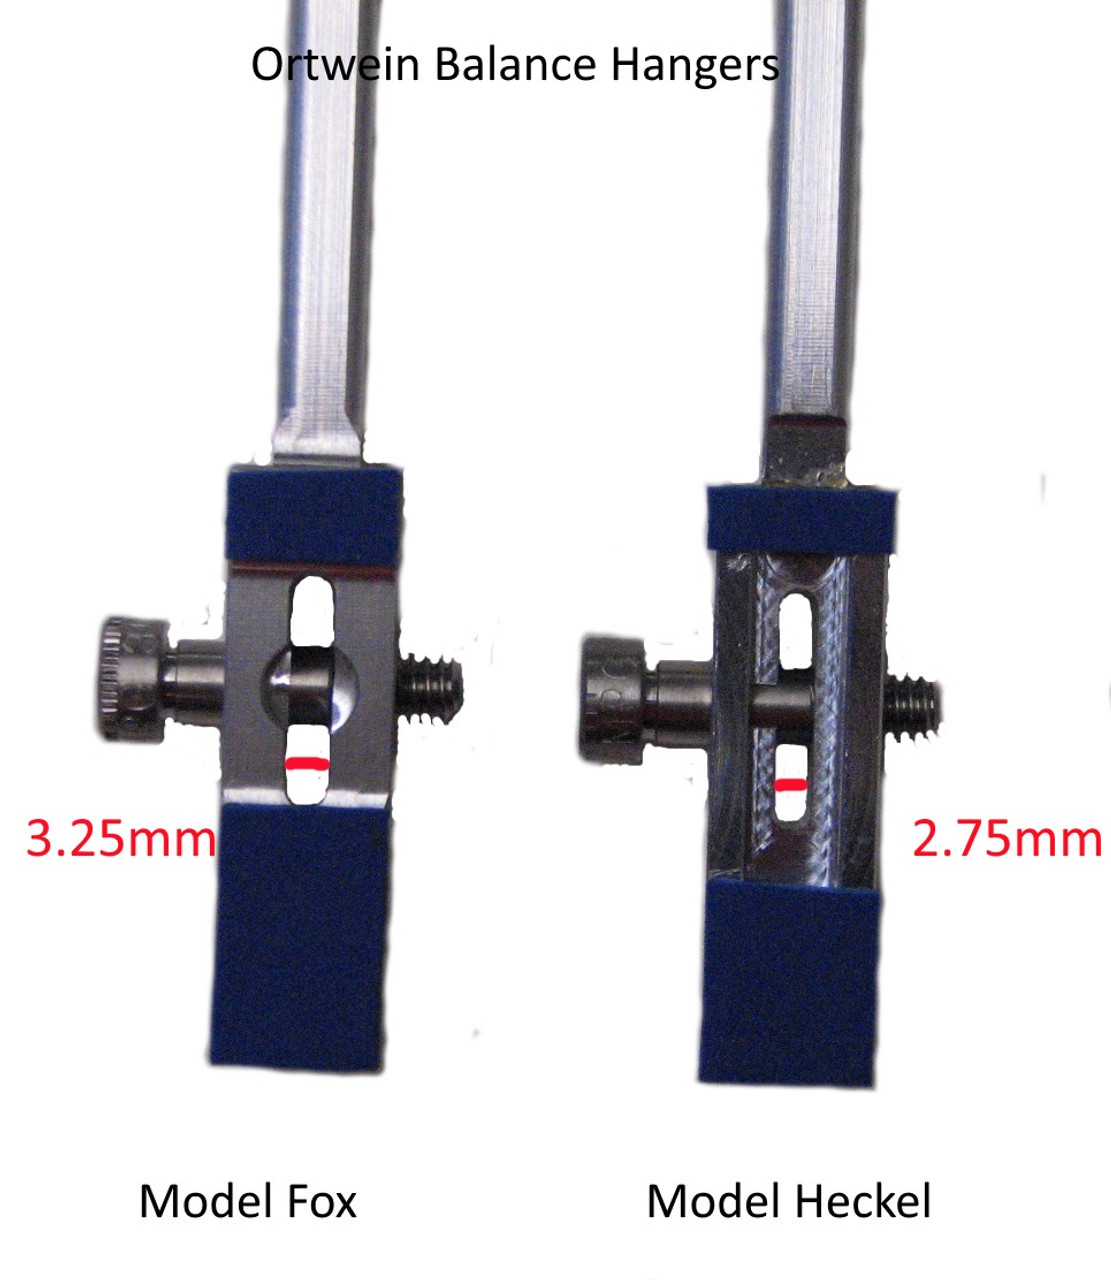 Ortwein Balance Hangers for Bassoon, receiving areas that fit around the neck strap ring have slightly different widths. Our best receiver measurements are that the Heckel hanger is 2.5-3.0mm and that the Fox hanger is 3.0-3.5mm. The indicated 2.75 and 3.25mm may not be perfectly exact.